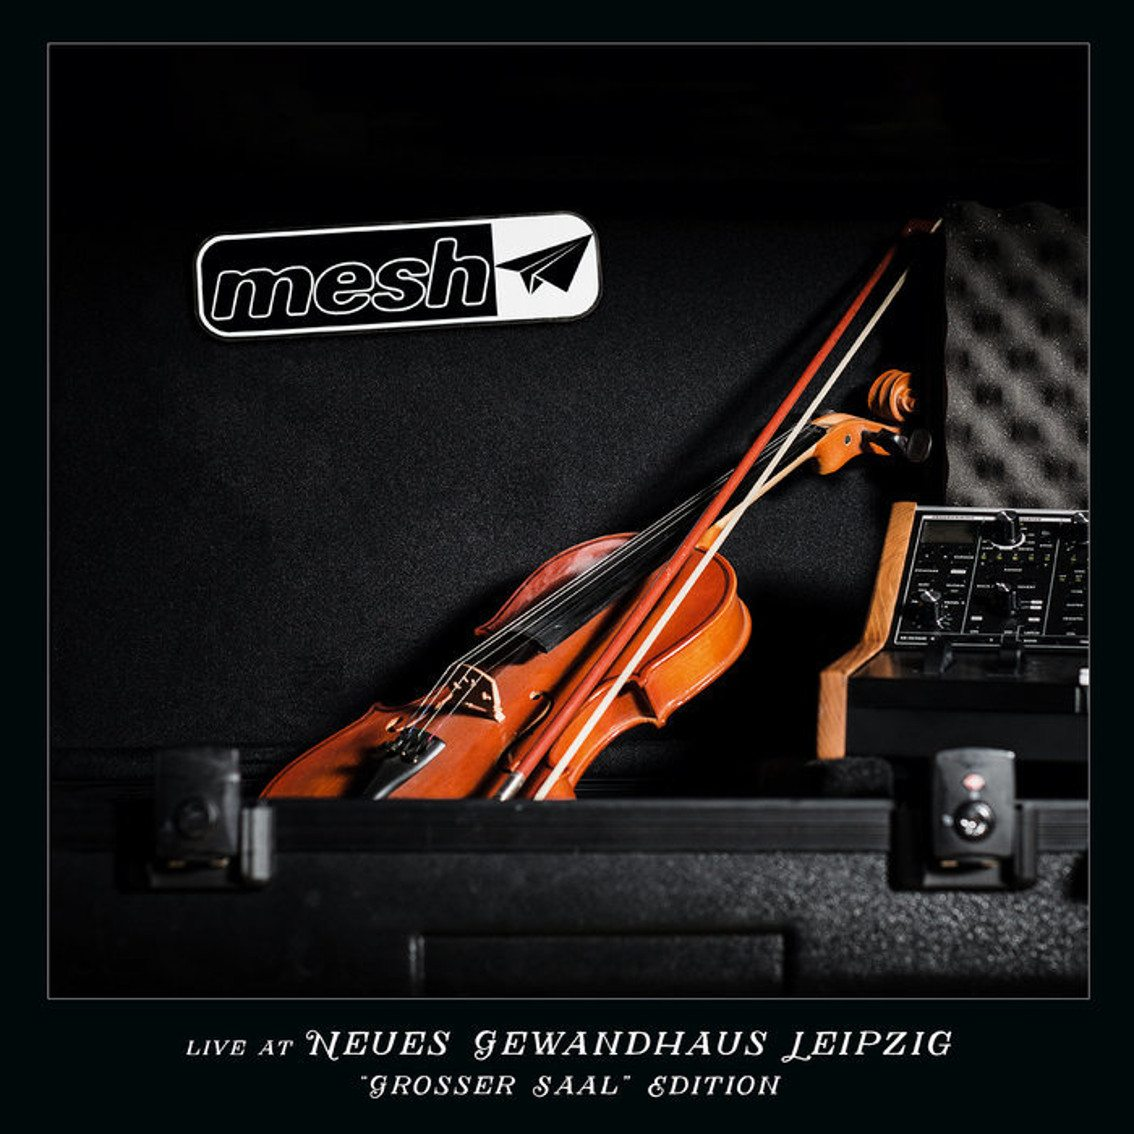 DVD/CD/vinyl Boxset for live Mesh release'Live at Neues Gewandhaus Leipzig' - get it now